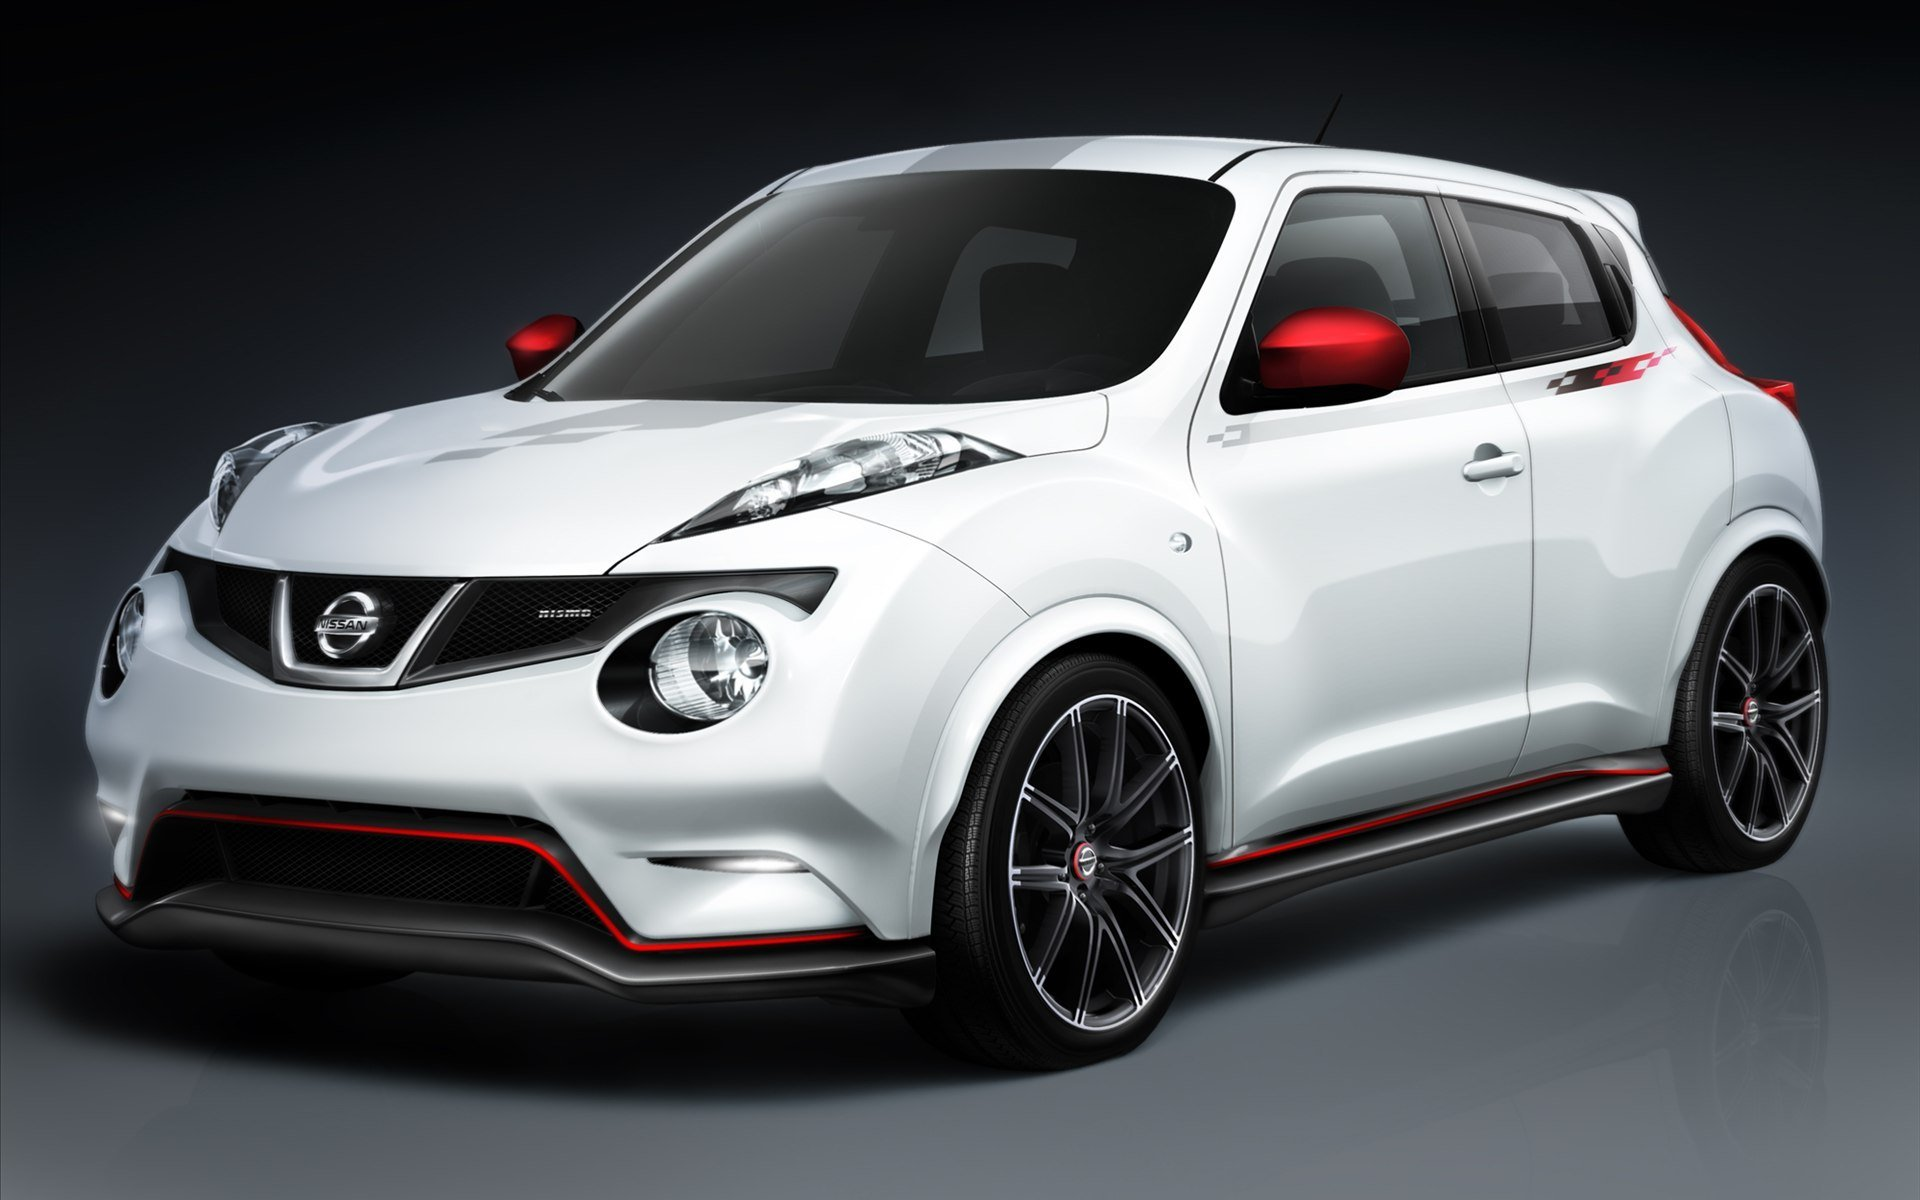 New 2011 Nissan Juke Nismo Concept Wallpaper Hd Car On This Month